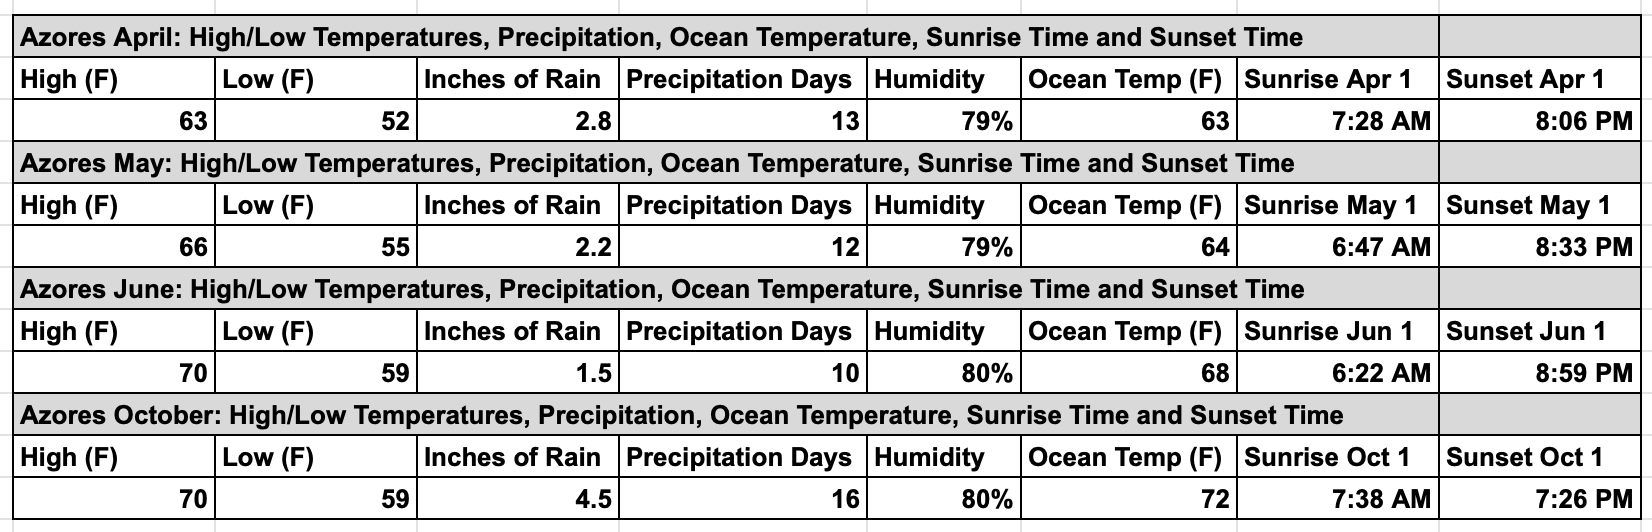 Azores-Weather-in-the Spring-Fall-Chart-Temperature-Precipitation-Humidity